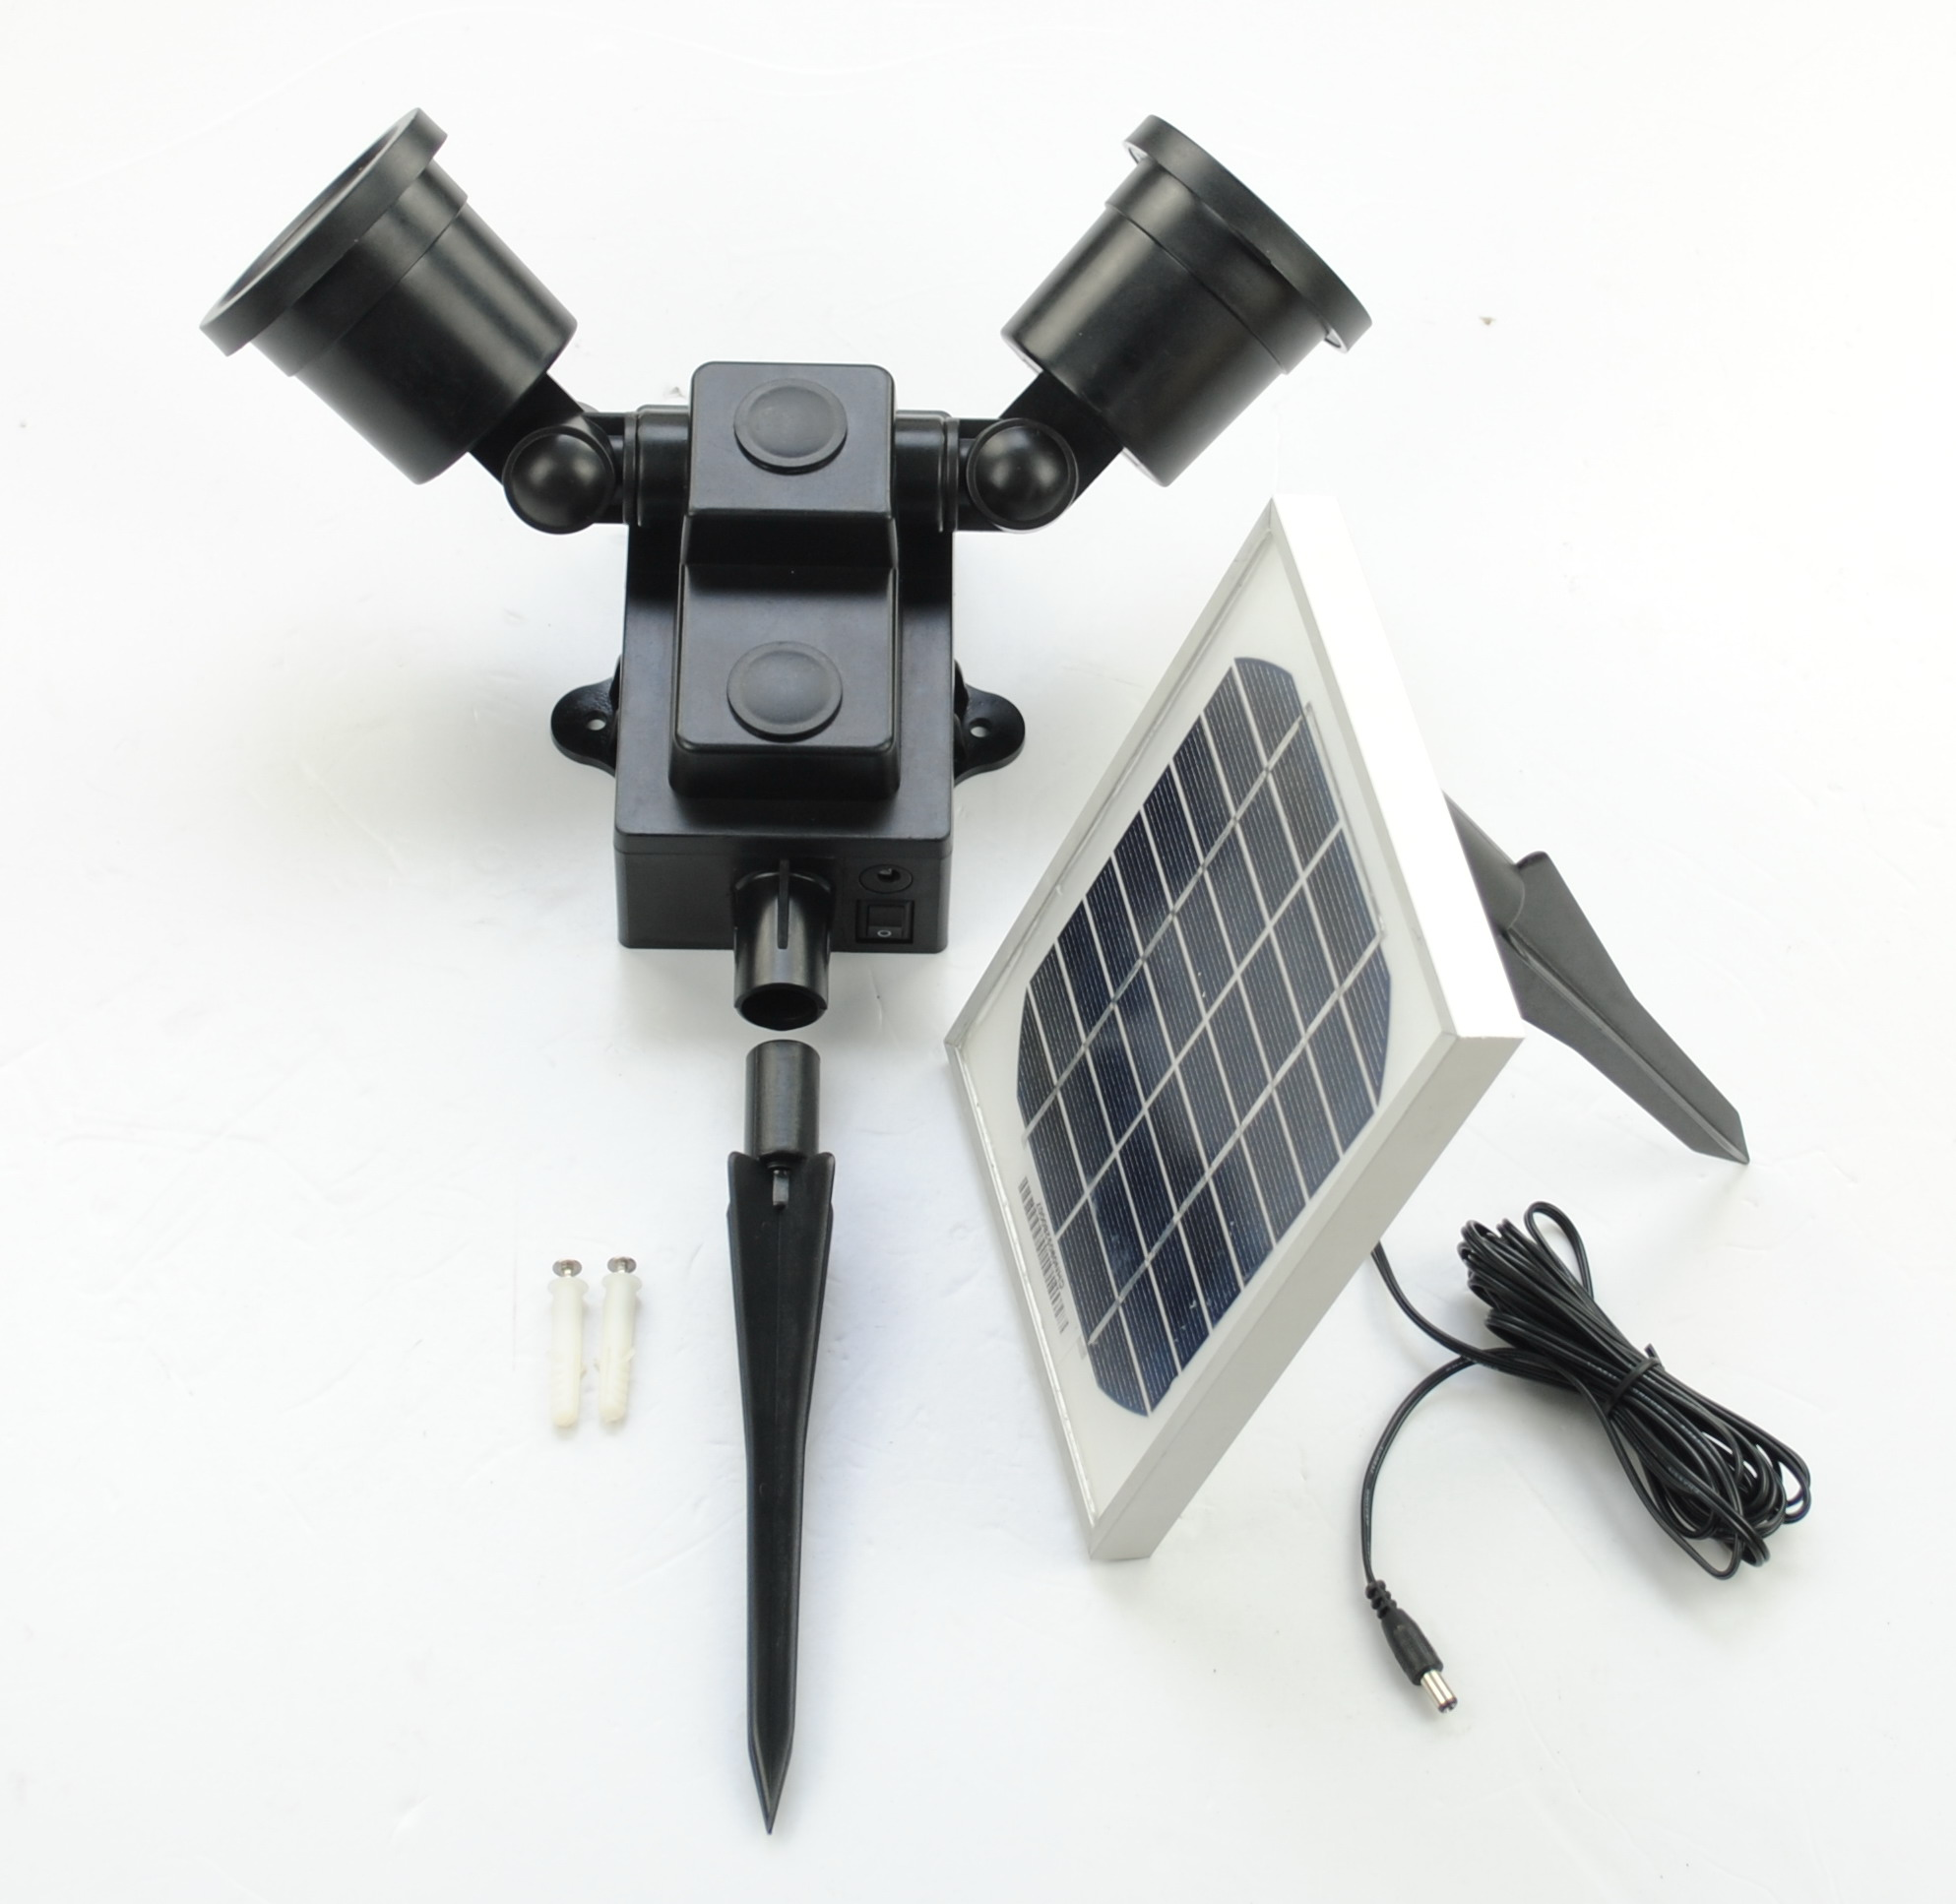 Wall Mounted Solar Porch Lights : Dual head 24 LED Outdoor Two Light Solar Powered Wall Mount Flood Light eBay